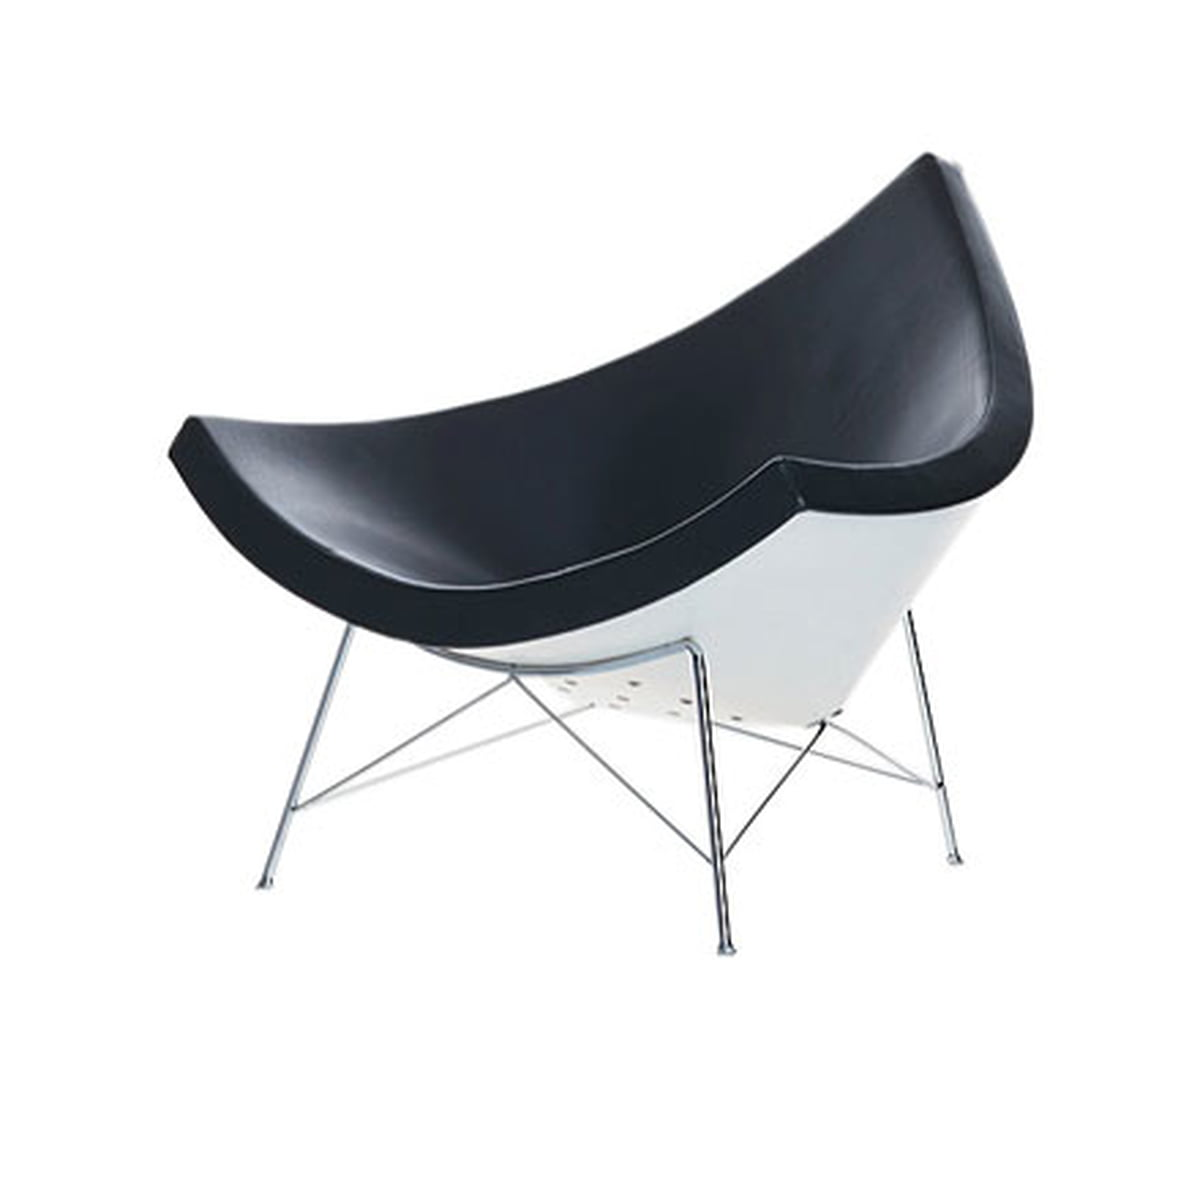 coconut chair vitra shop. Black Bedroom Furniture Sets. Home Design Ideas